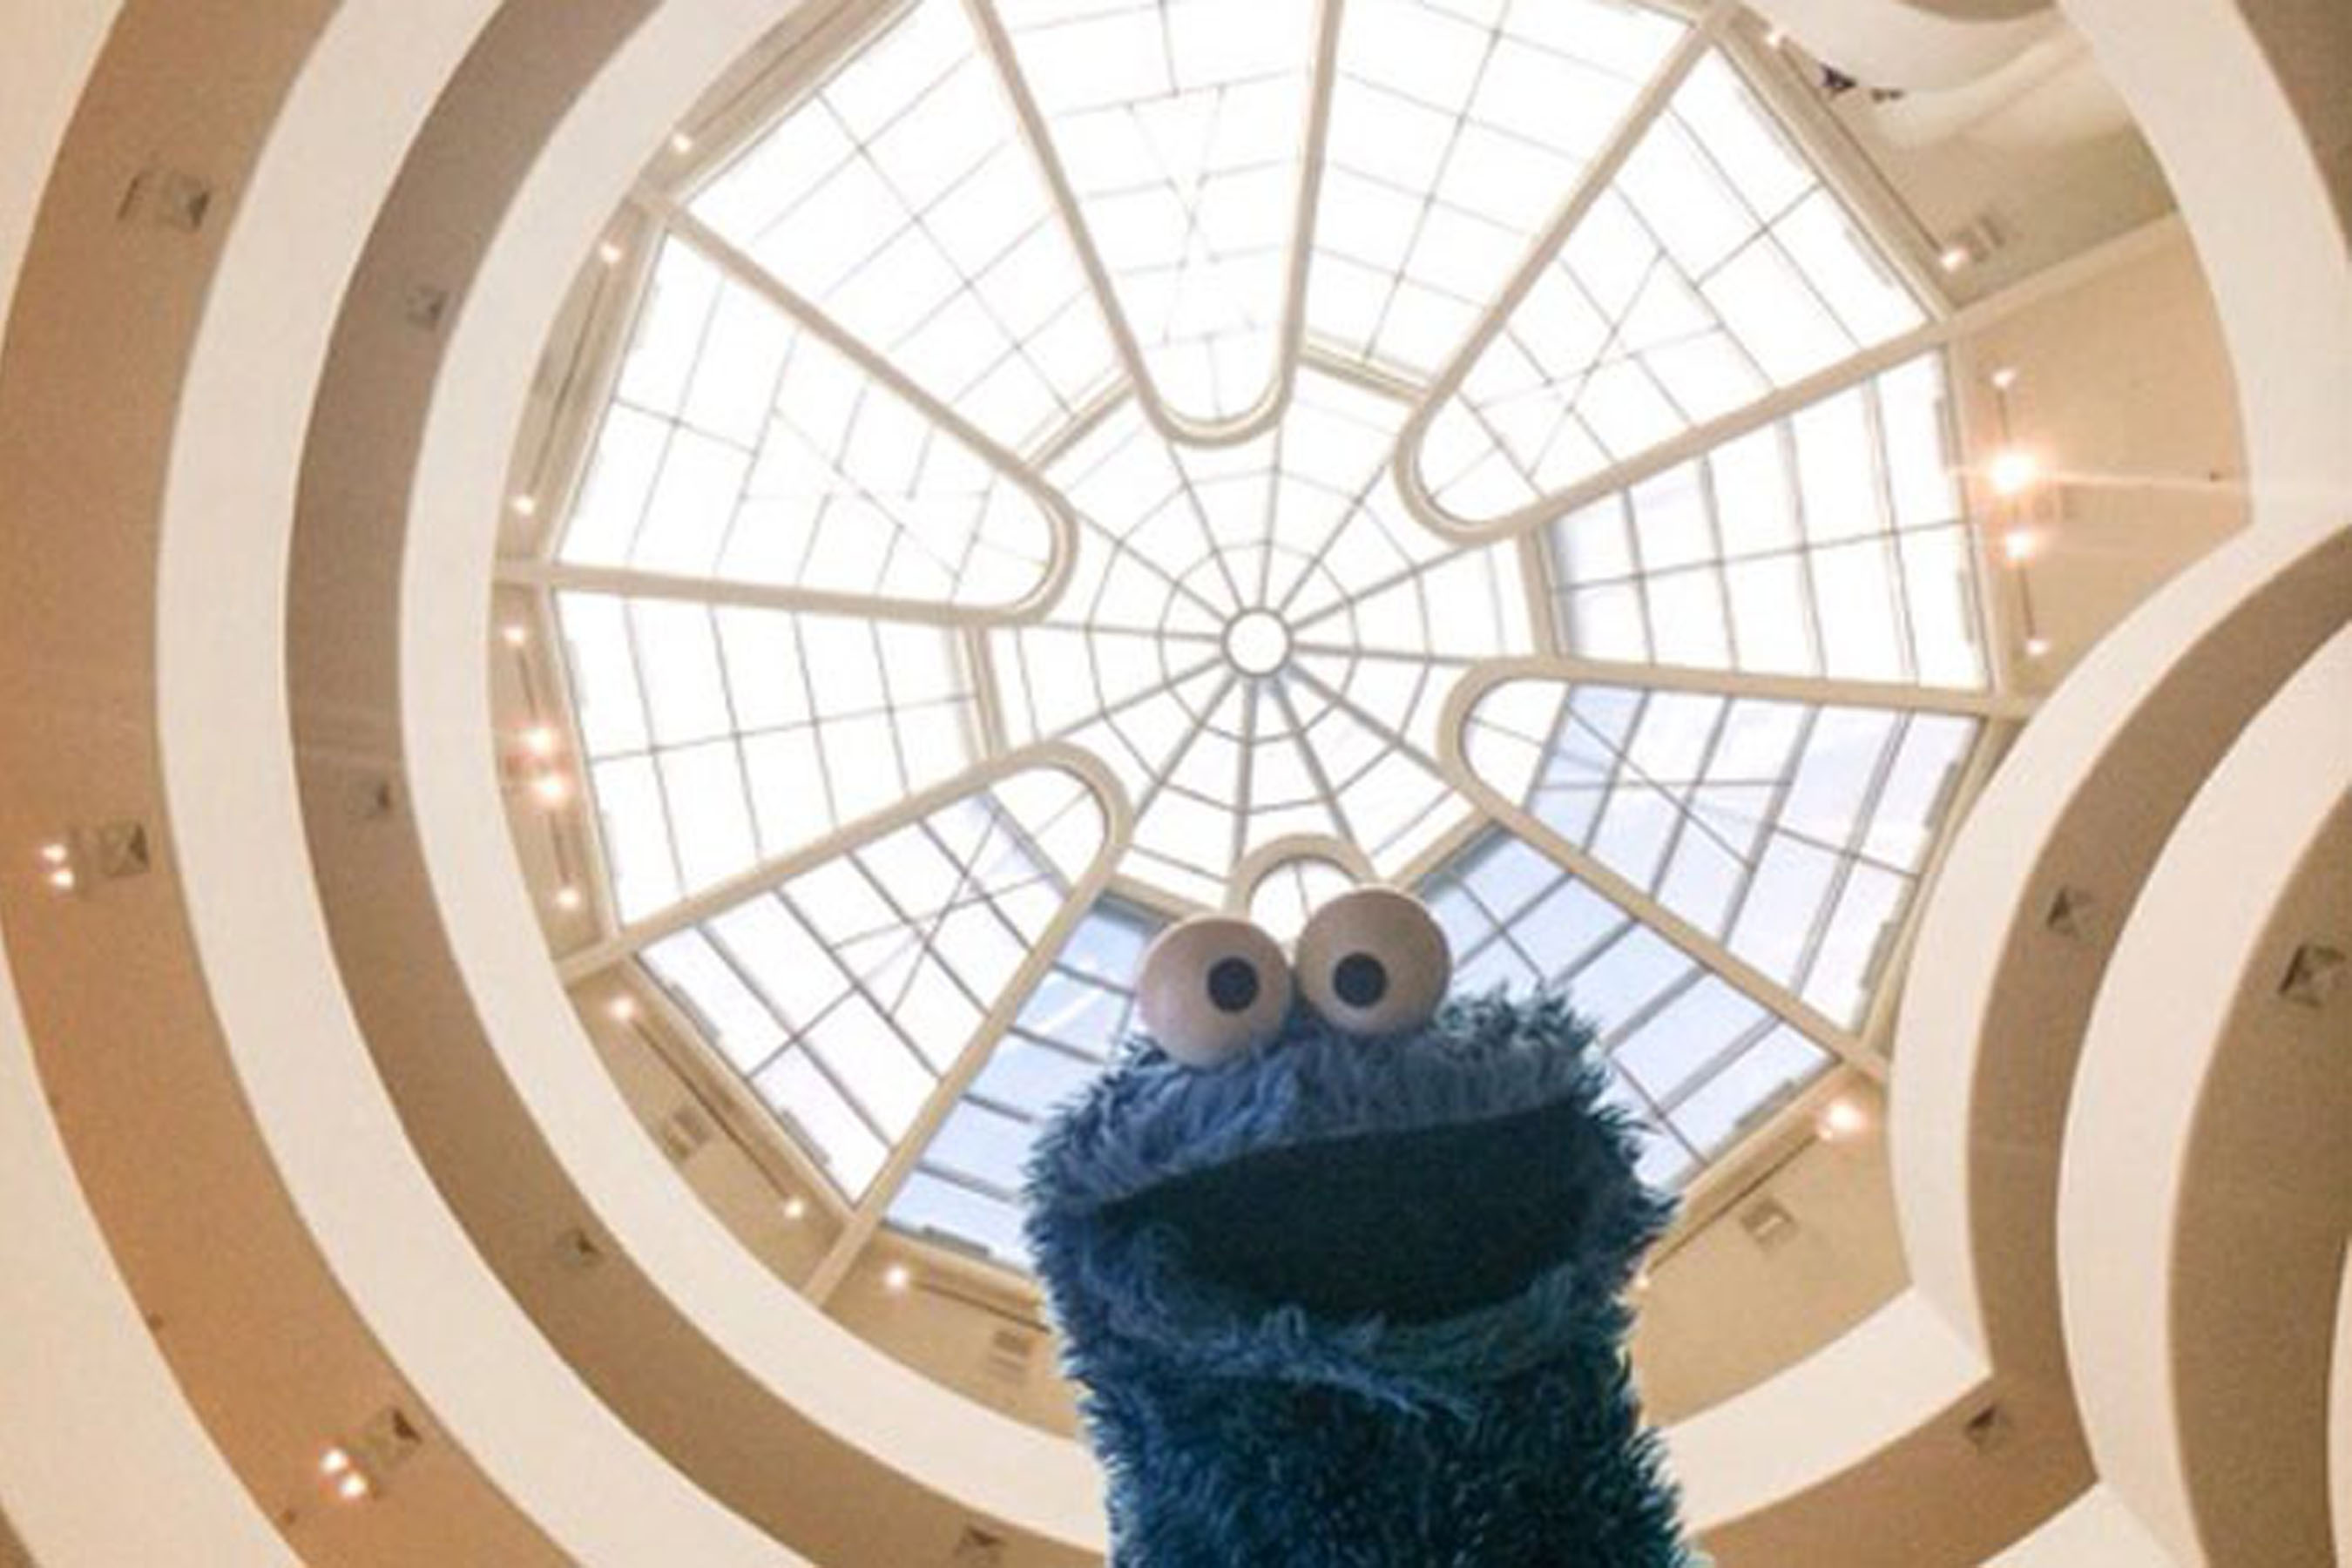 Vincent Van Dough, Cookie Monster, and the Museum of Modern Cookie